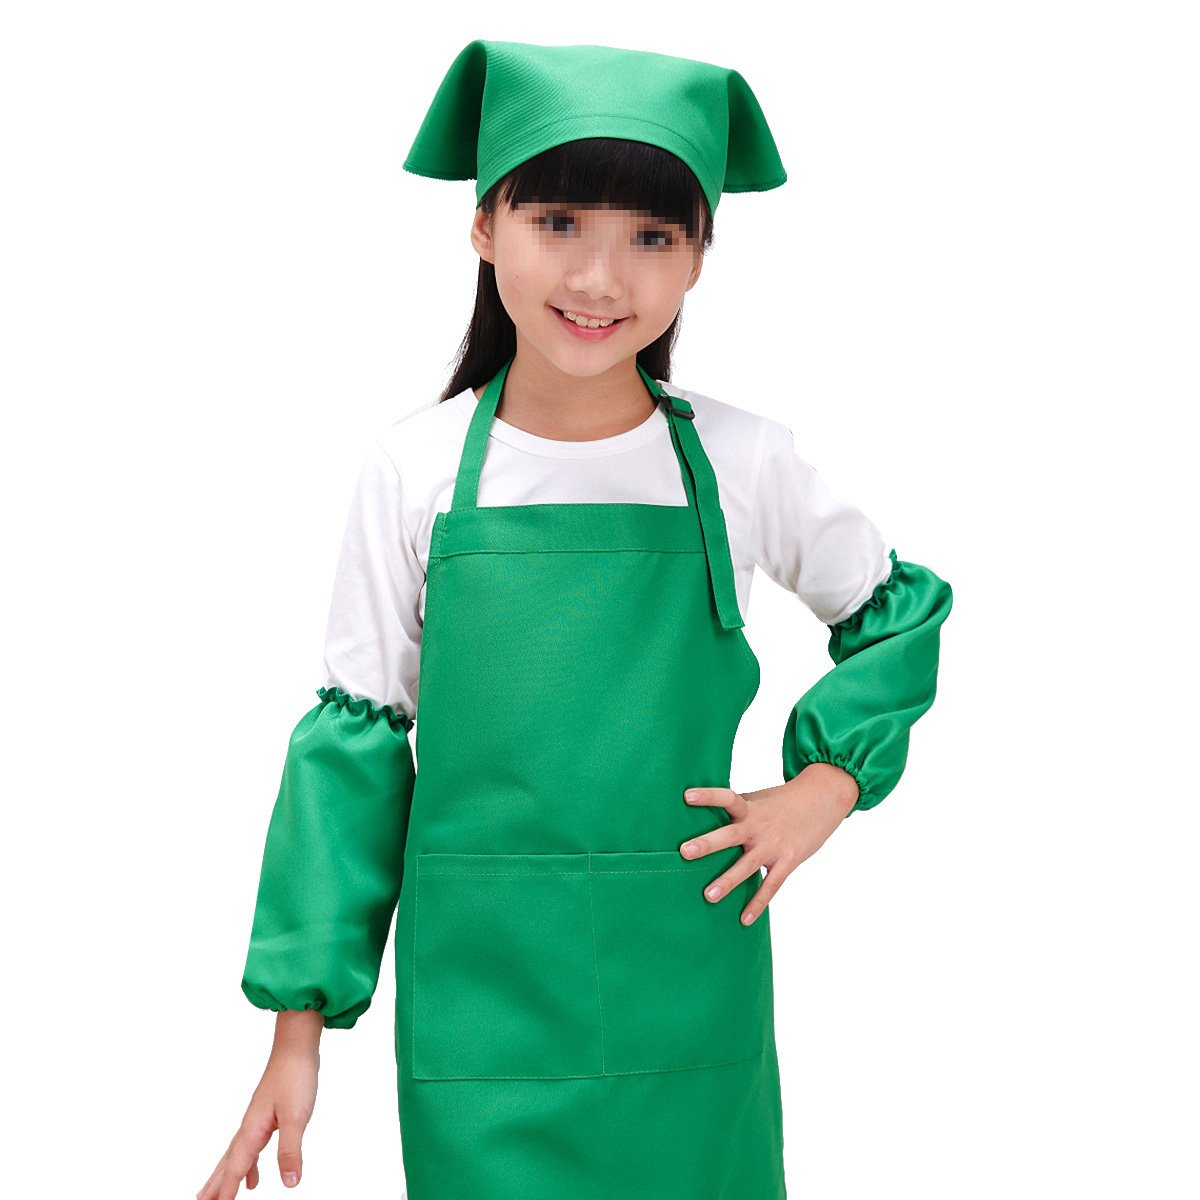 (Green) - SEADEAR Waterproof Anti-oil Adjustable Durable Children's Aprons Fashion Apron with Hat Sleeves For Painting Kindergarten Art Museum Cooking 7-12 years old(Green)  グリーン B074FS2SG9